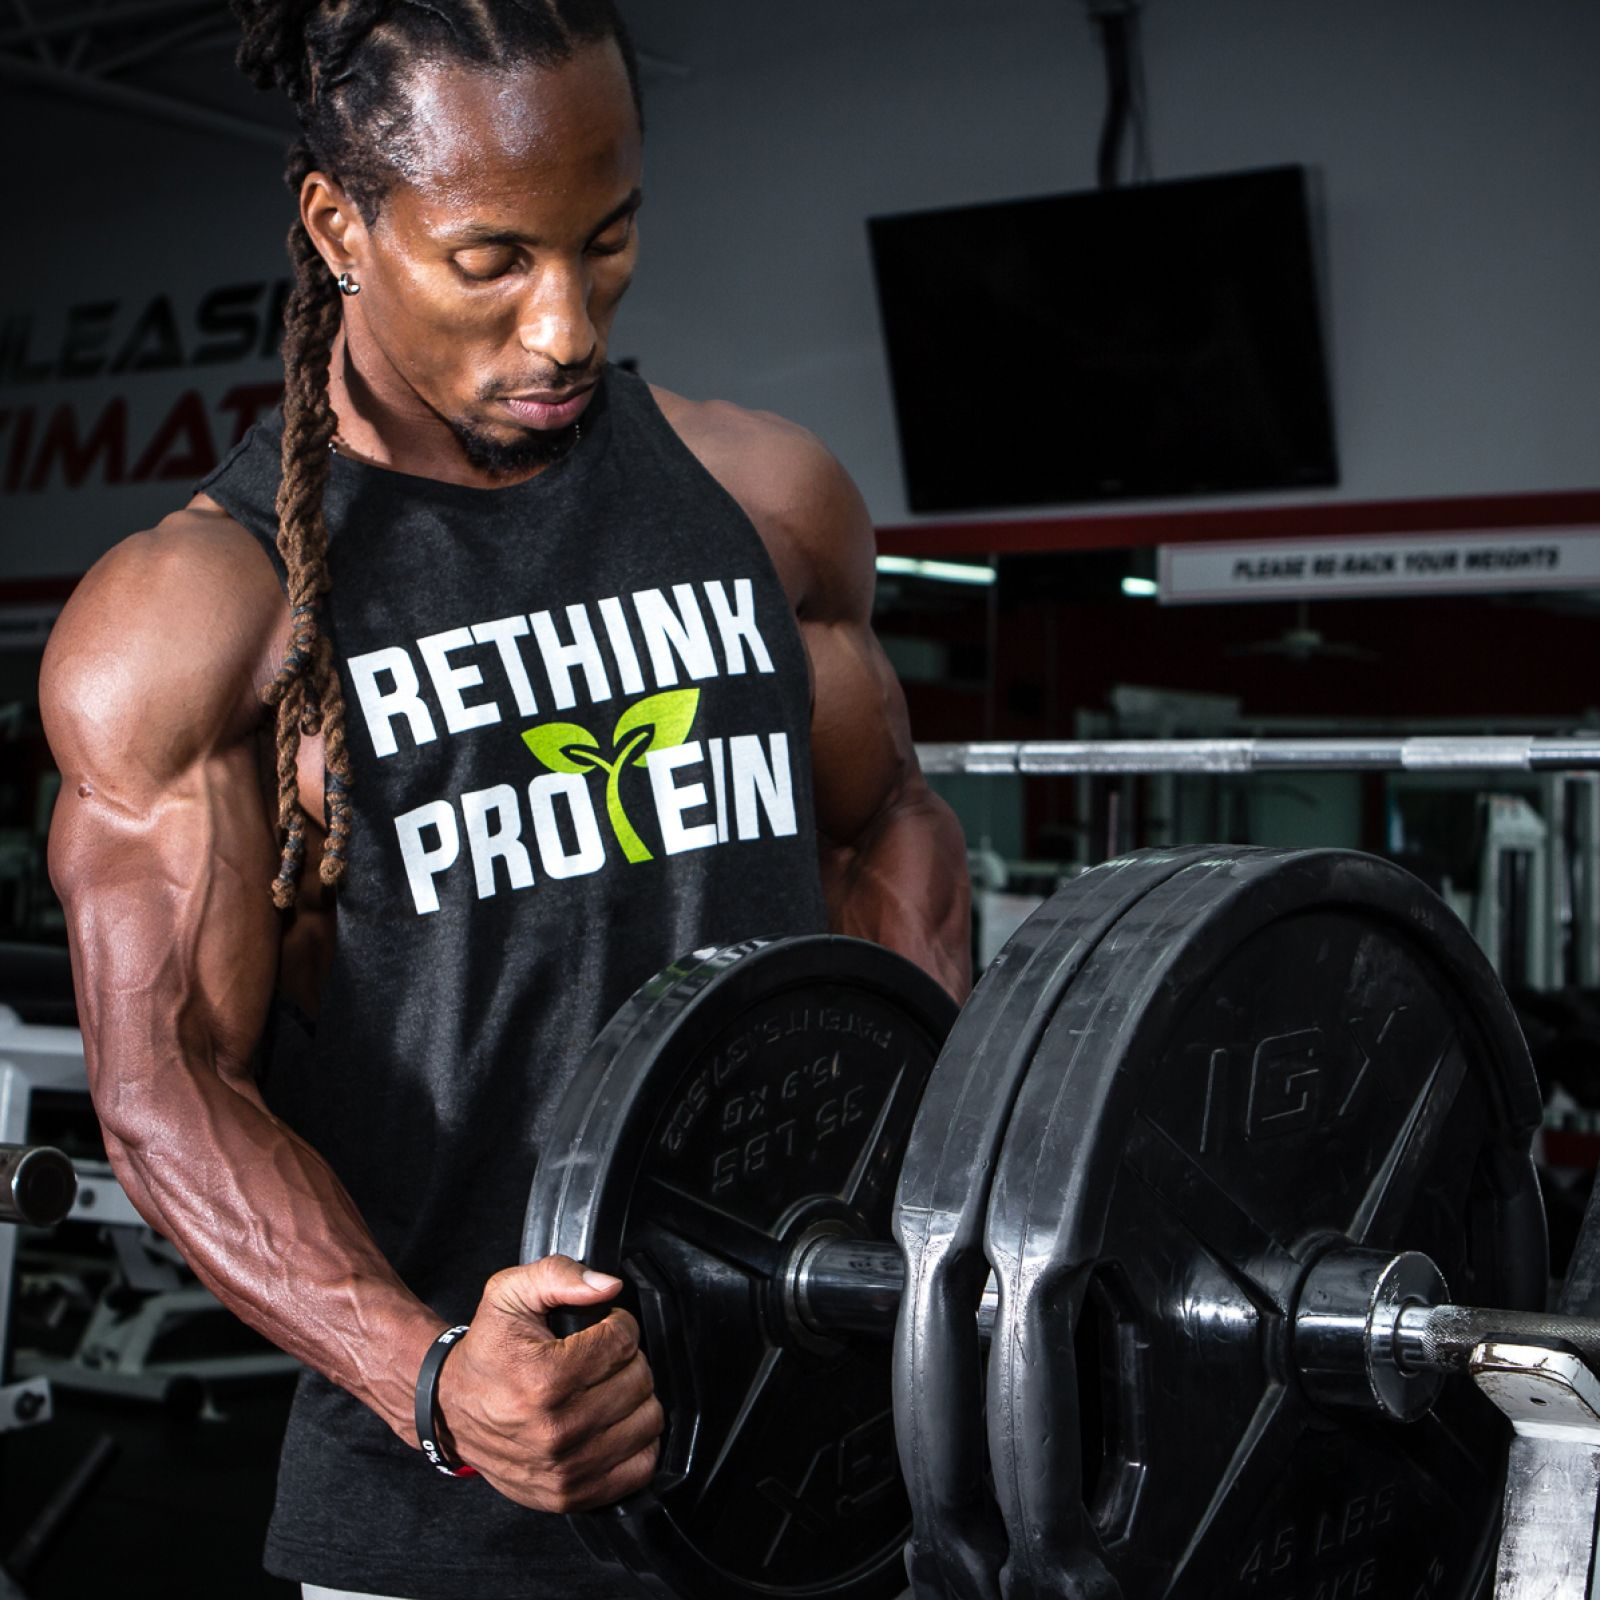 6 Vegan Athletes Breaking The Myth About Meat And Power